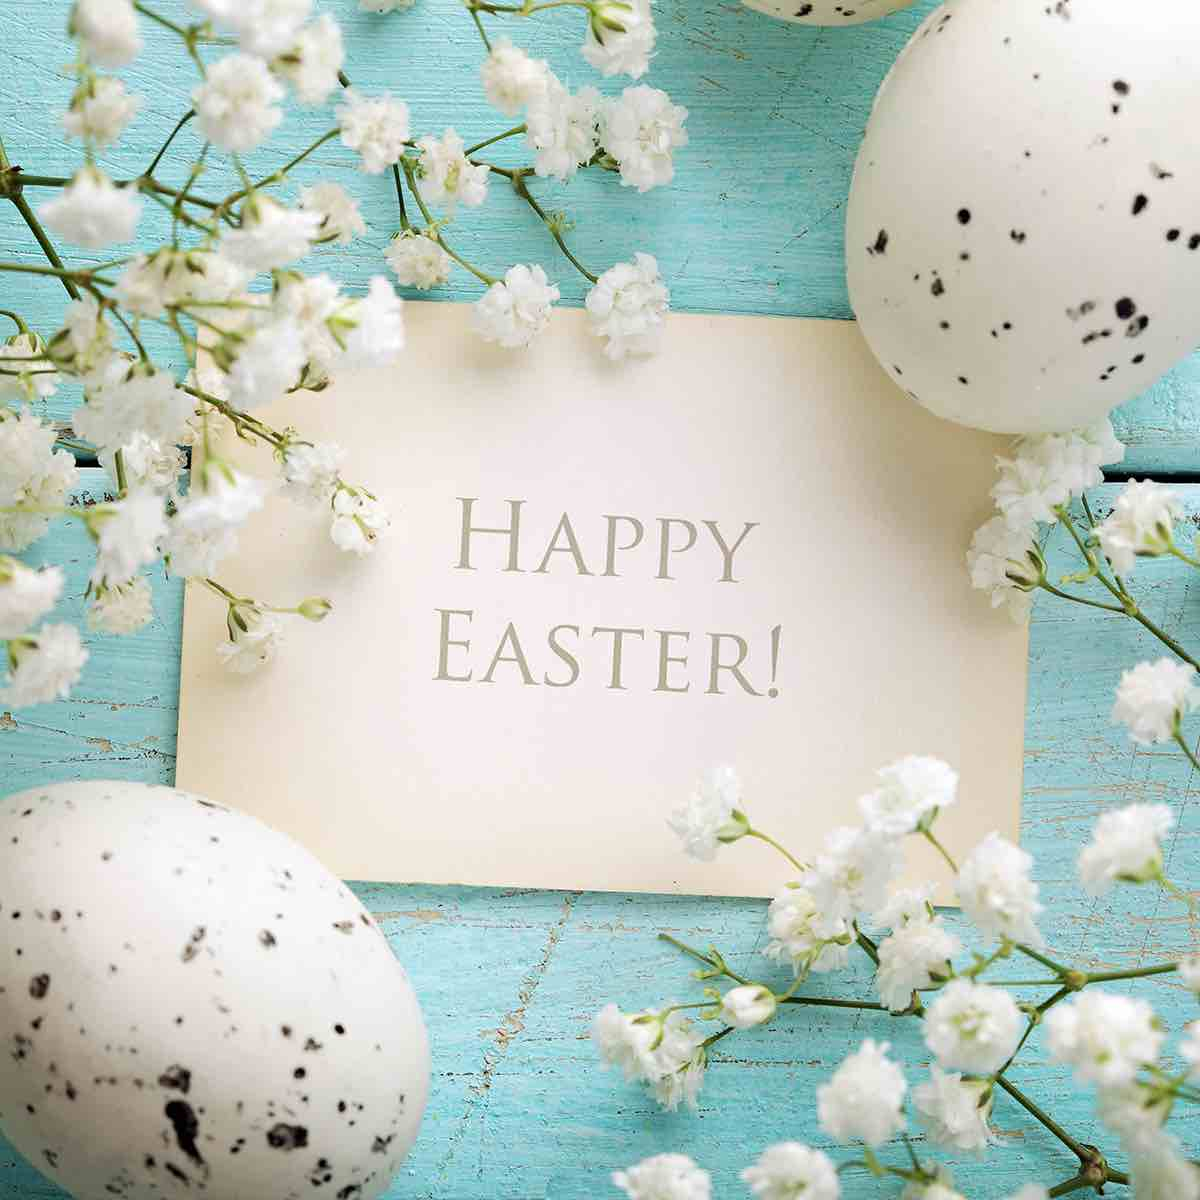 Happy Easter from Prime Dental Associates - Johnsburg IL